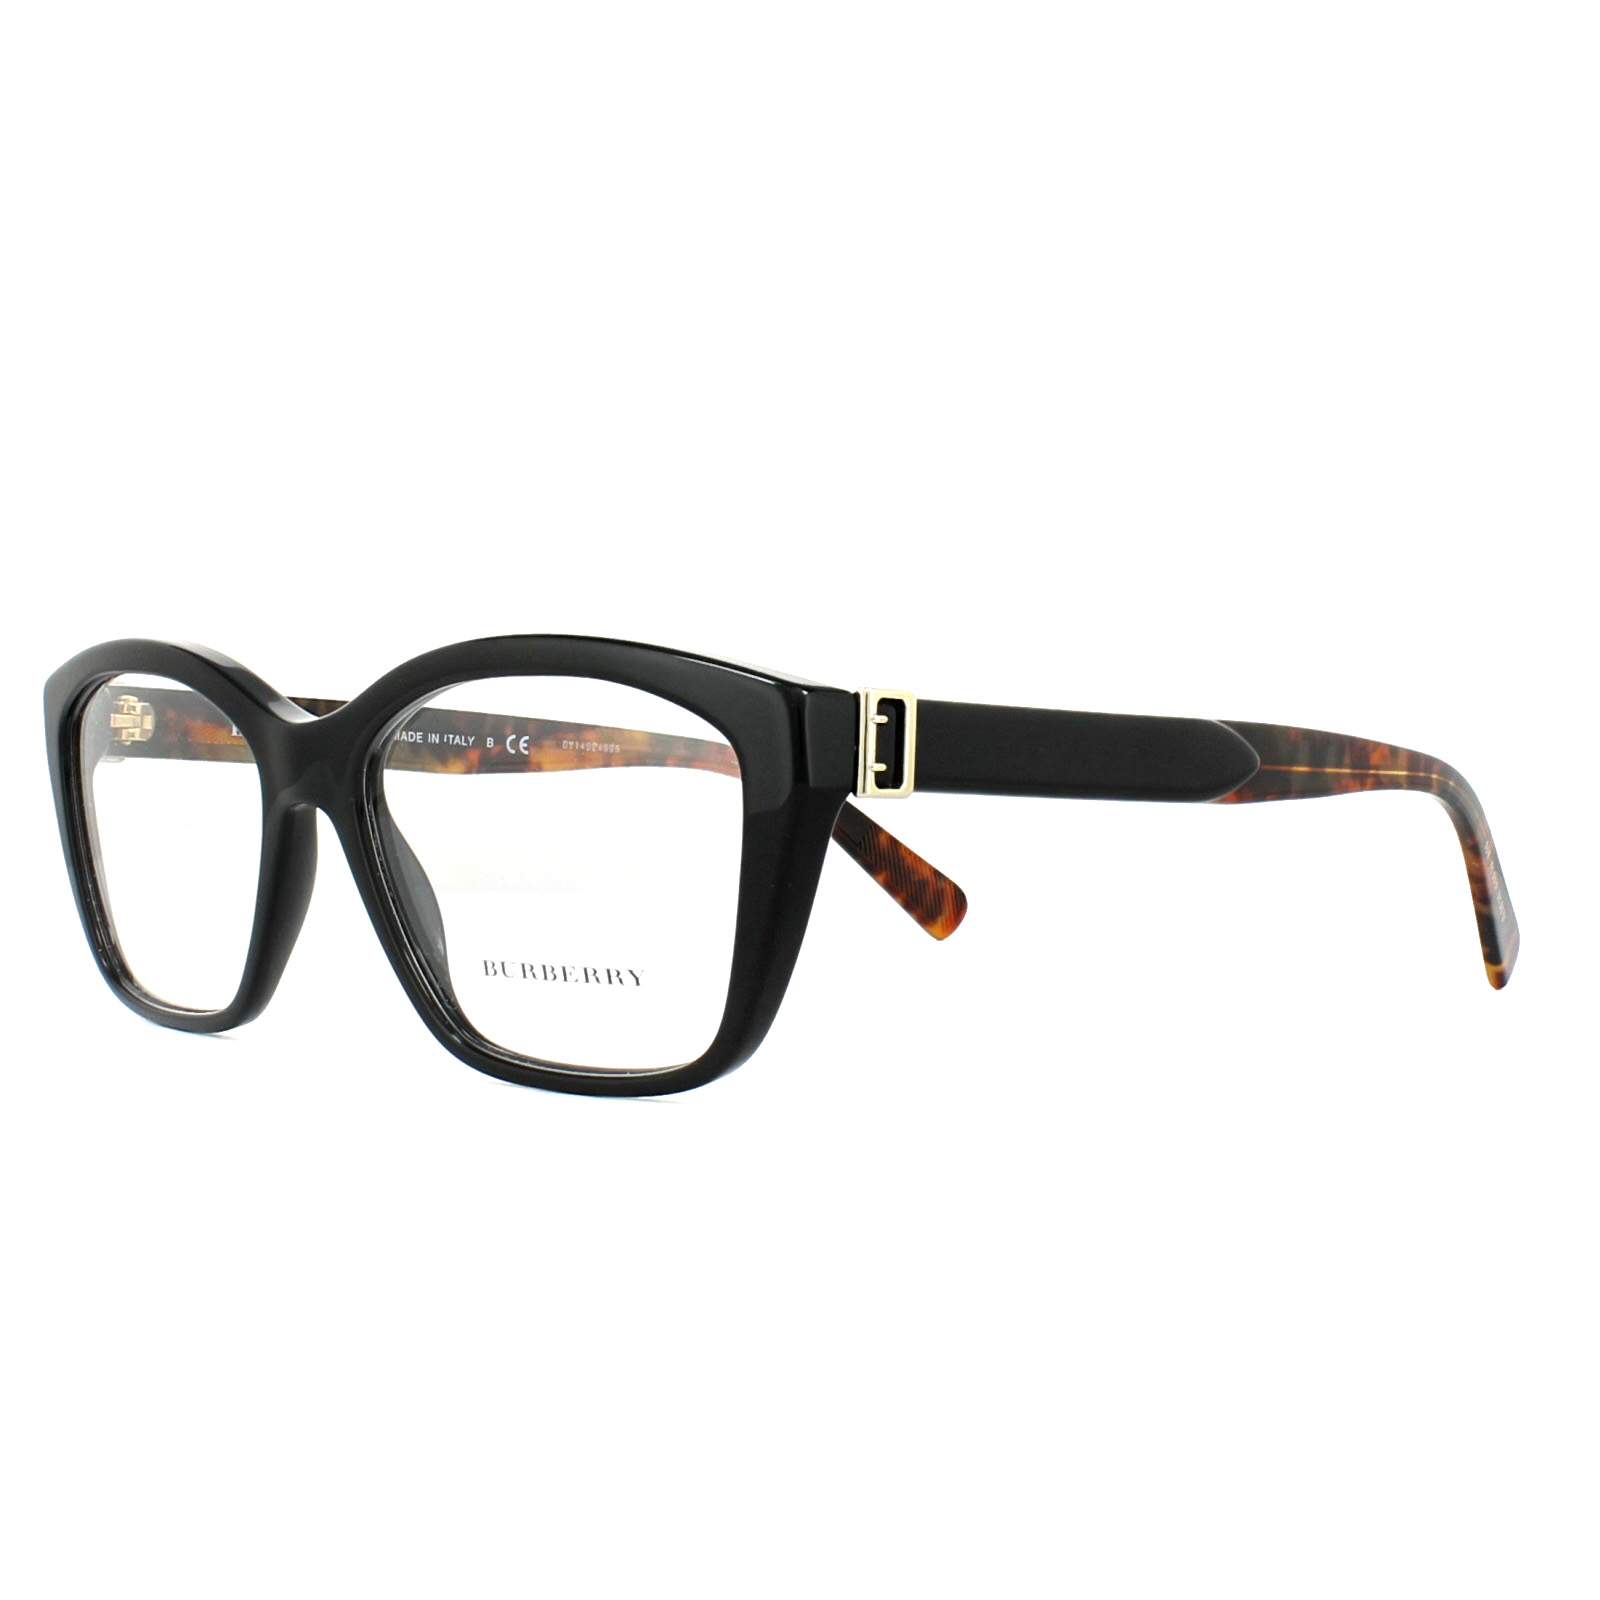 b49e05421af Burberry Glasses Frames BE2265 3683 Black 53mm Womens 8053672805918 ...